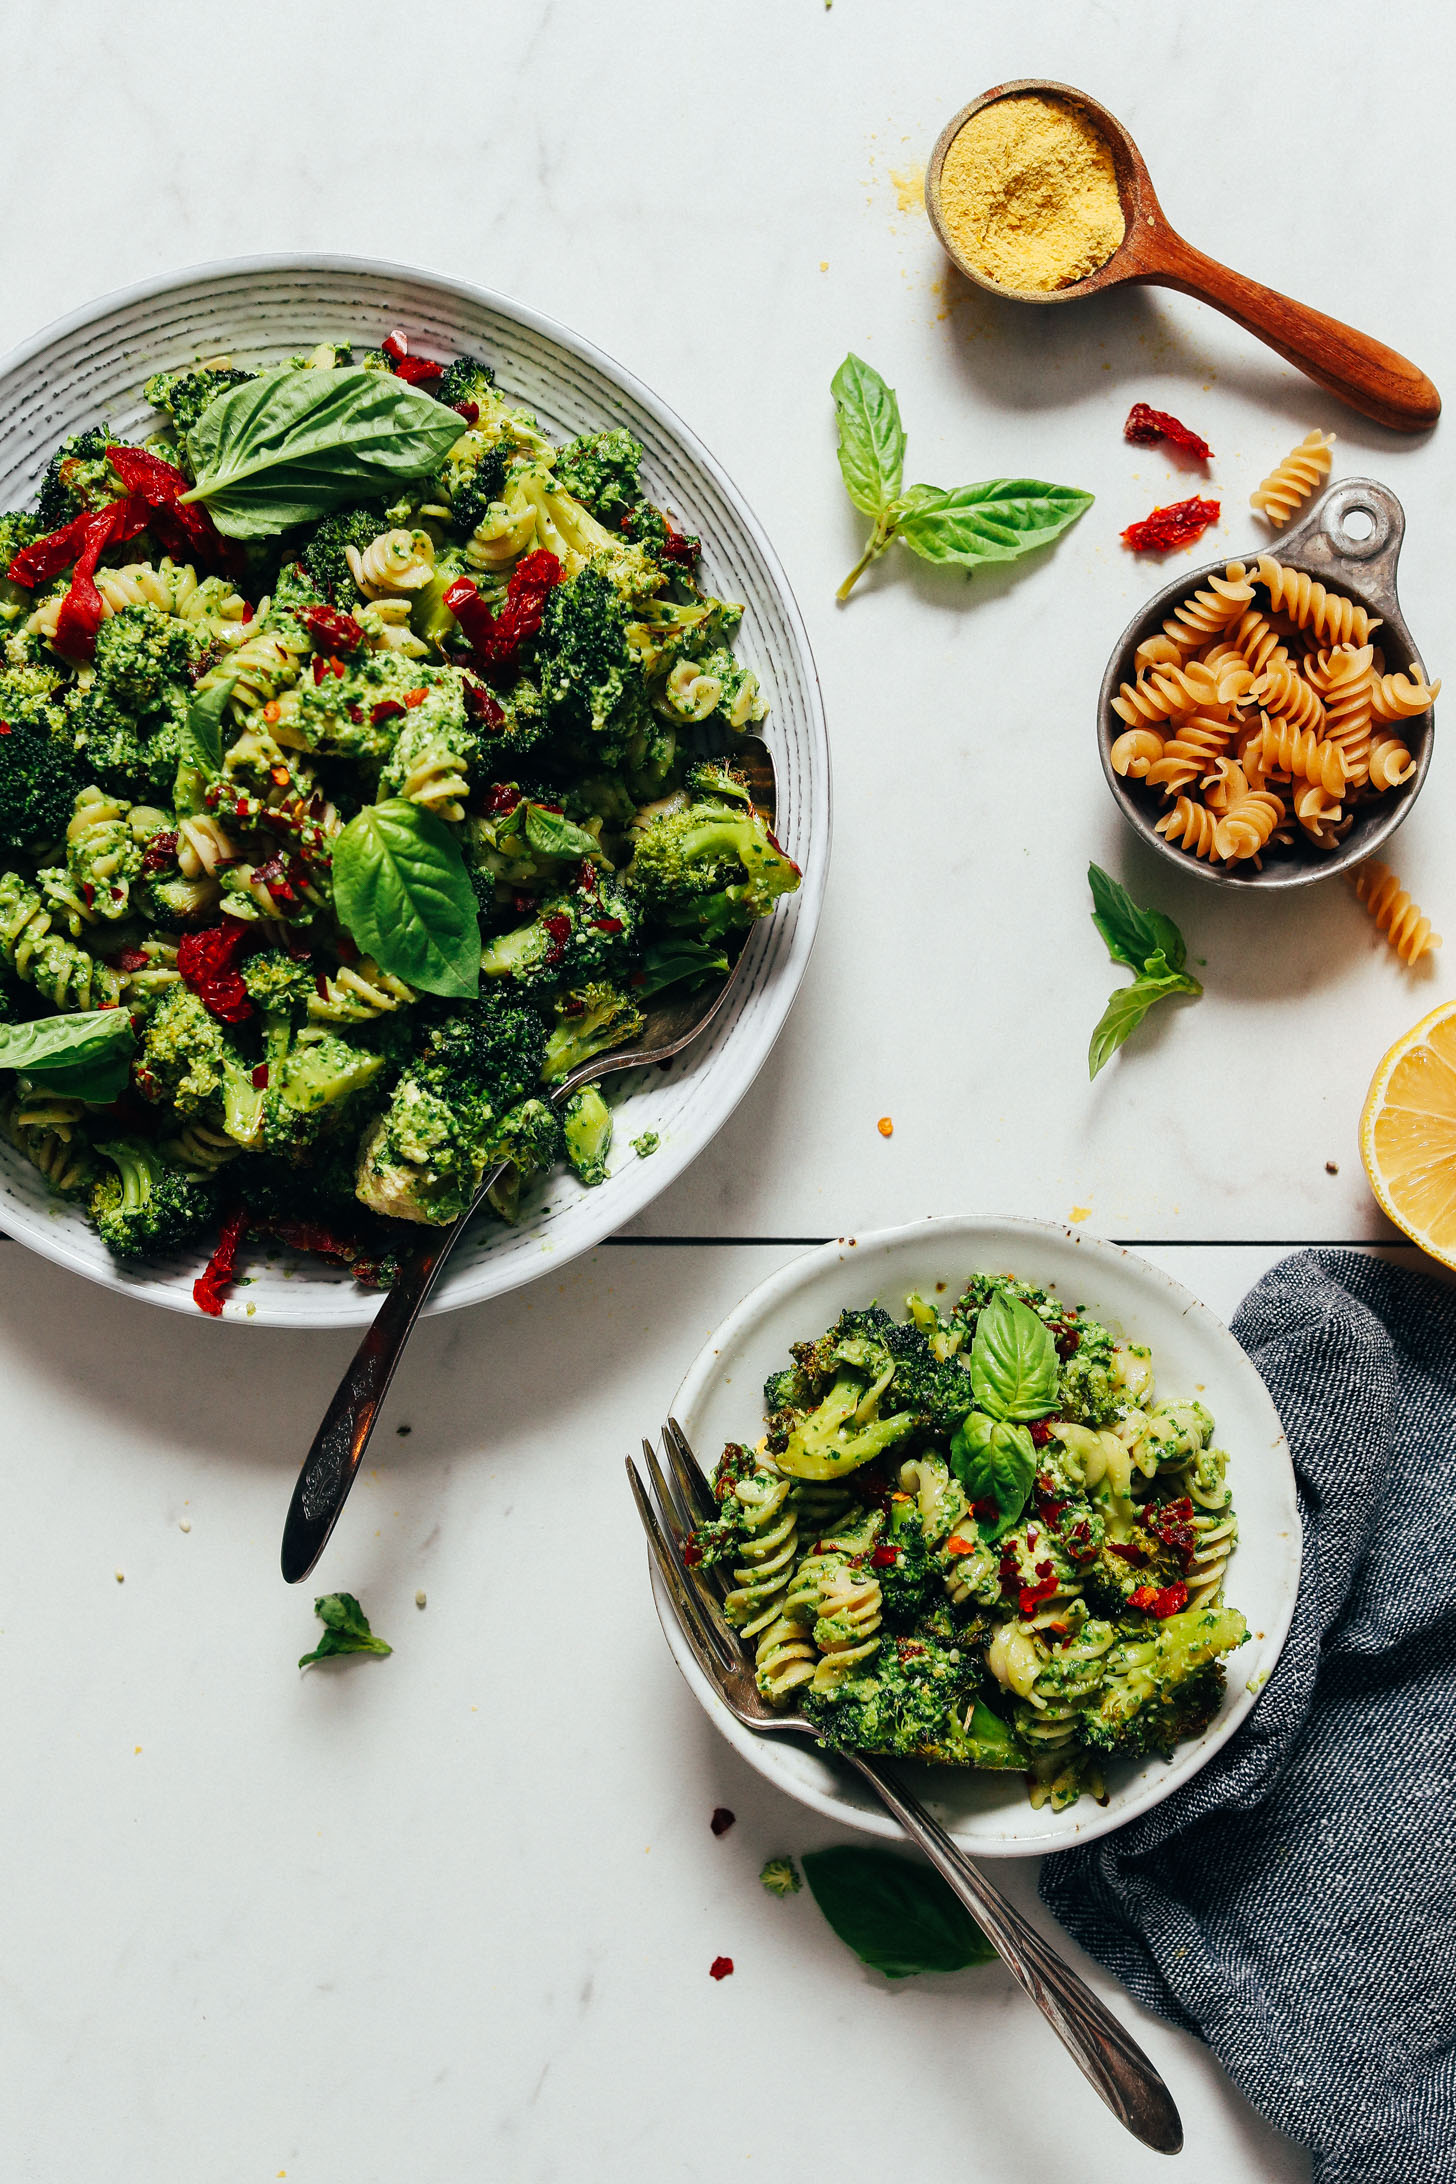 Gluten-free noodles and nutritional yeast beside bowls of our Roasted Broccoli & Pasta Salad with Hemp Pesto